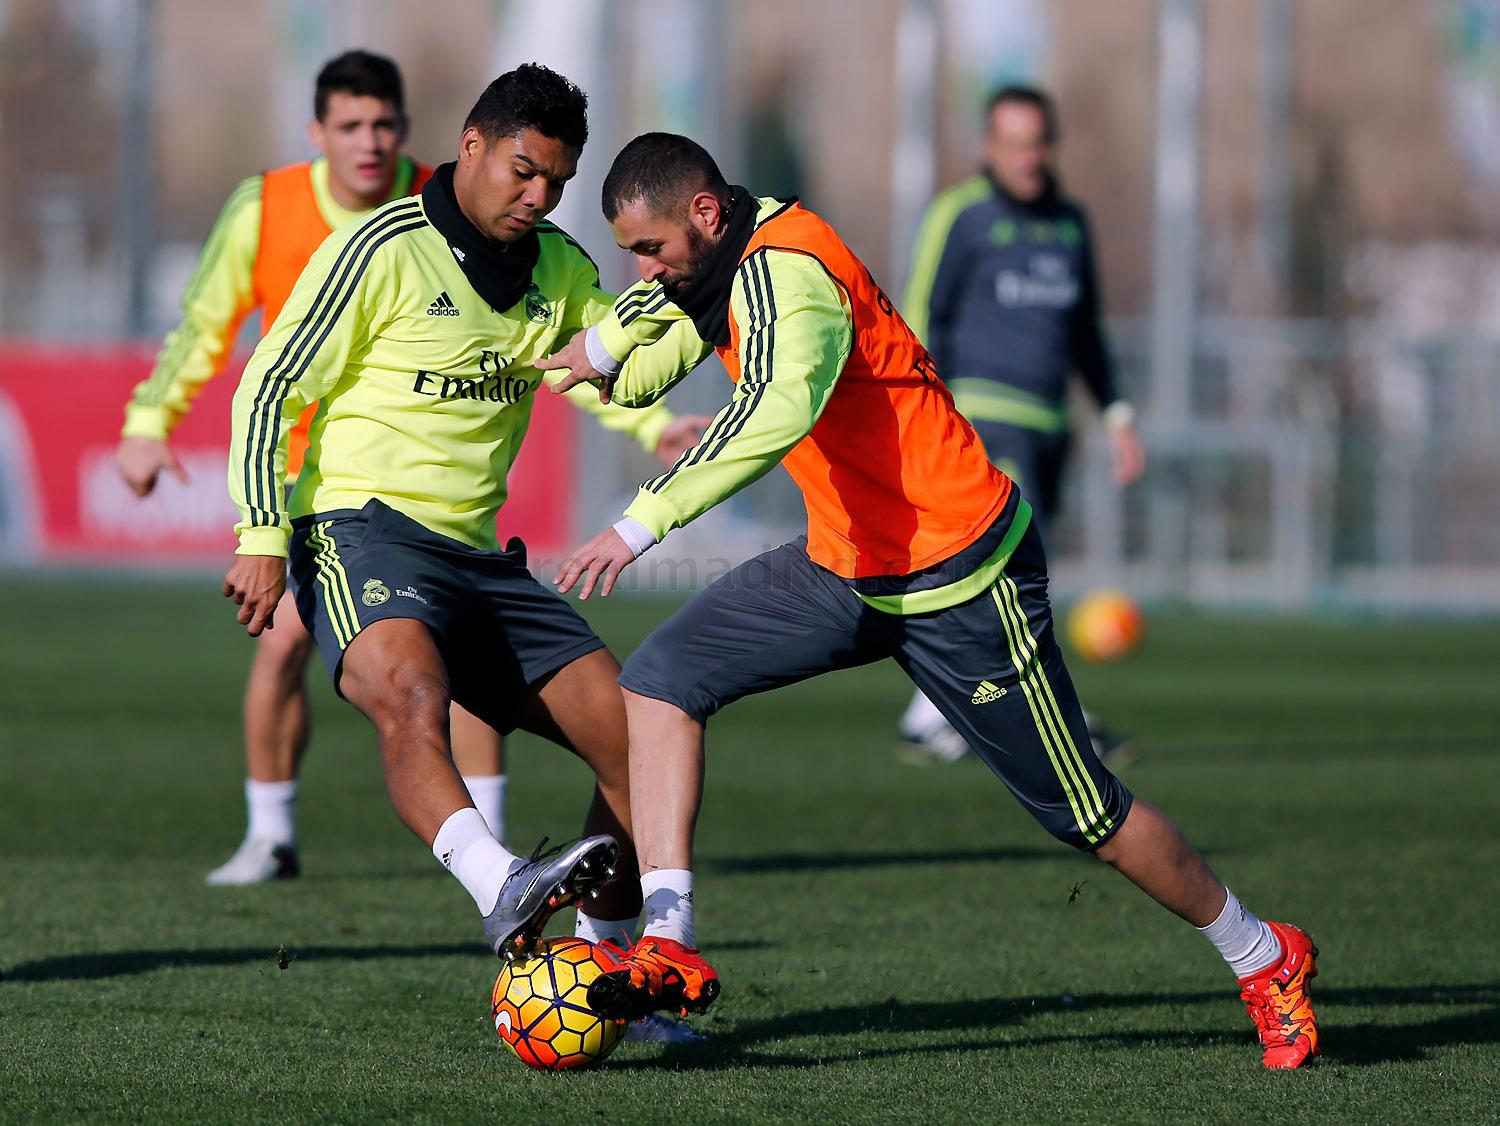 Real Madrid - Entrenamiento del Real Madrid - 19-12-2015